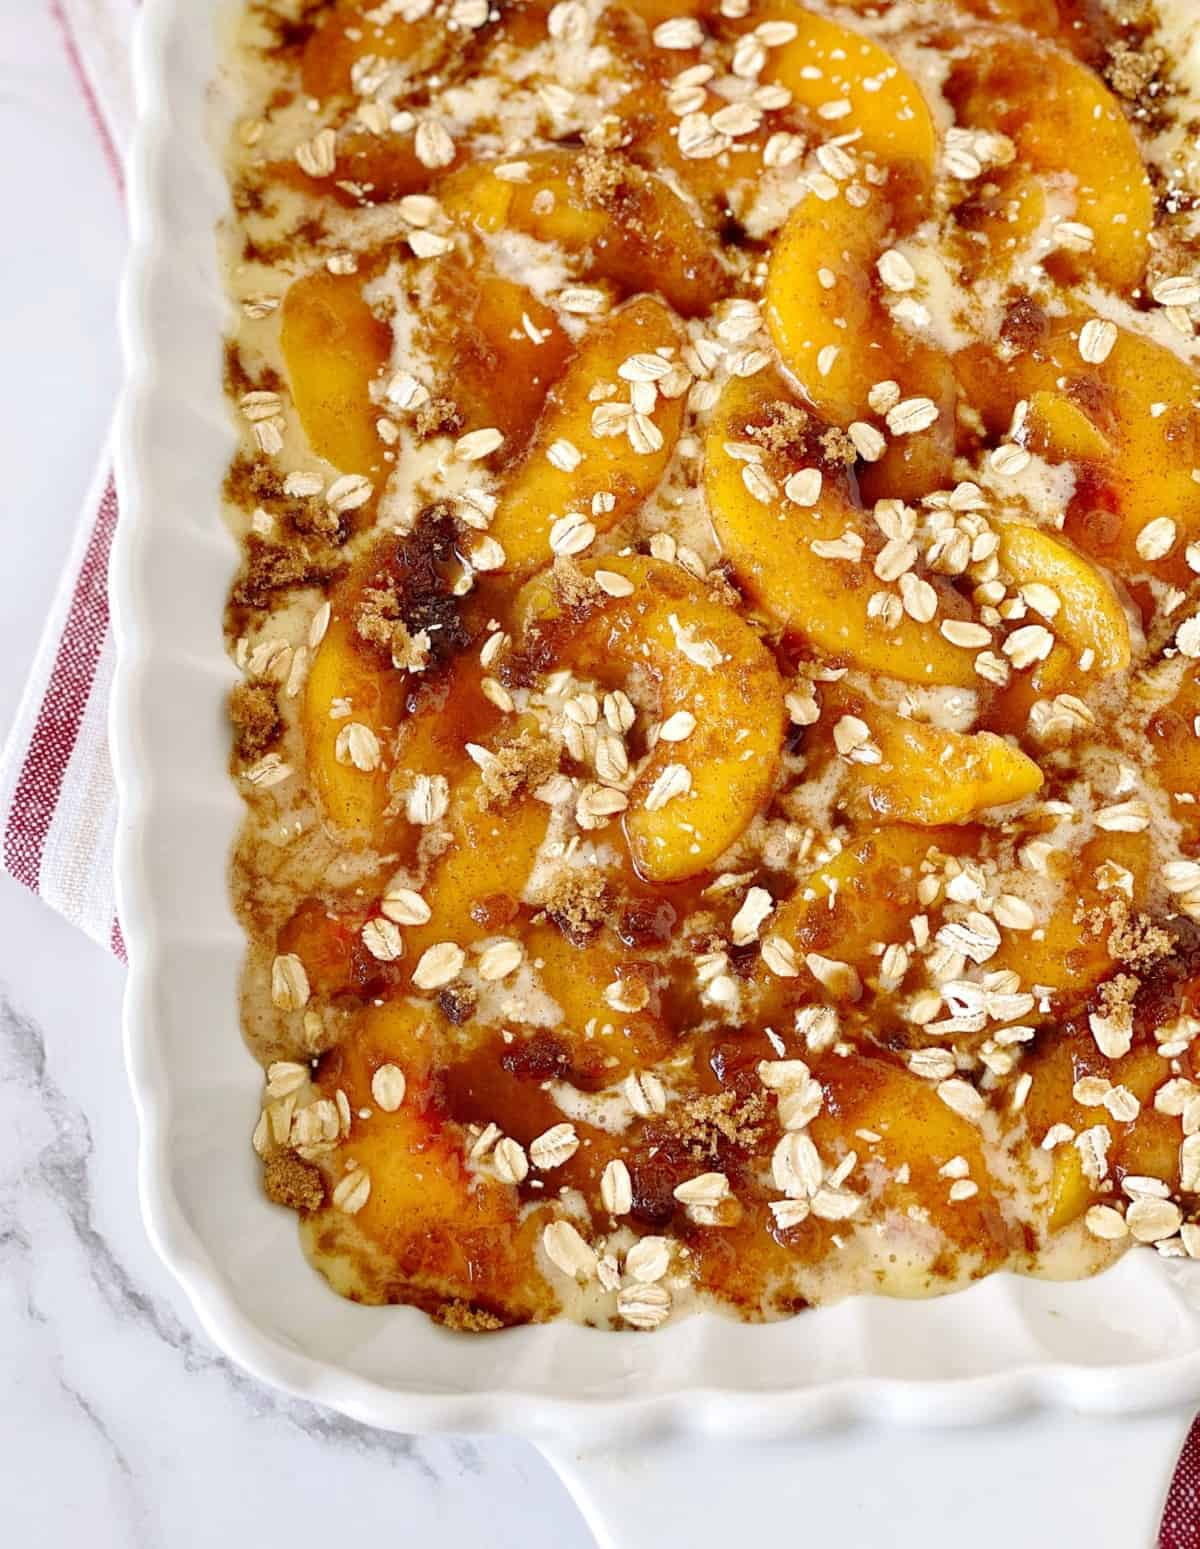 peaches with oats on top